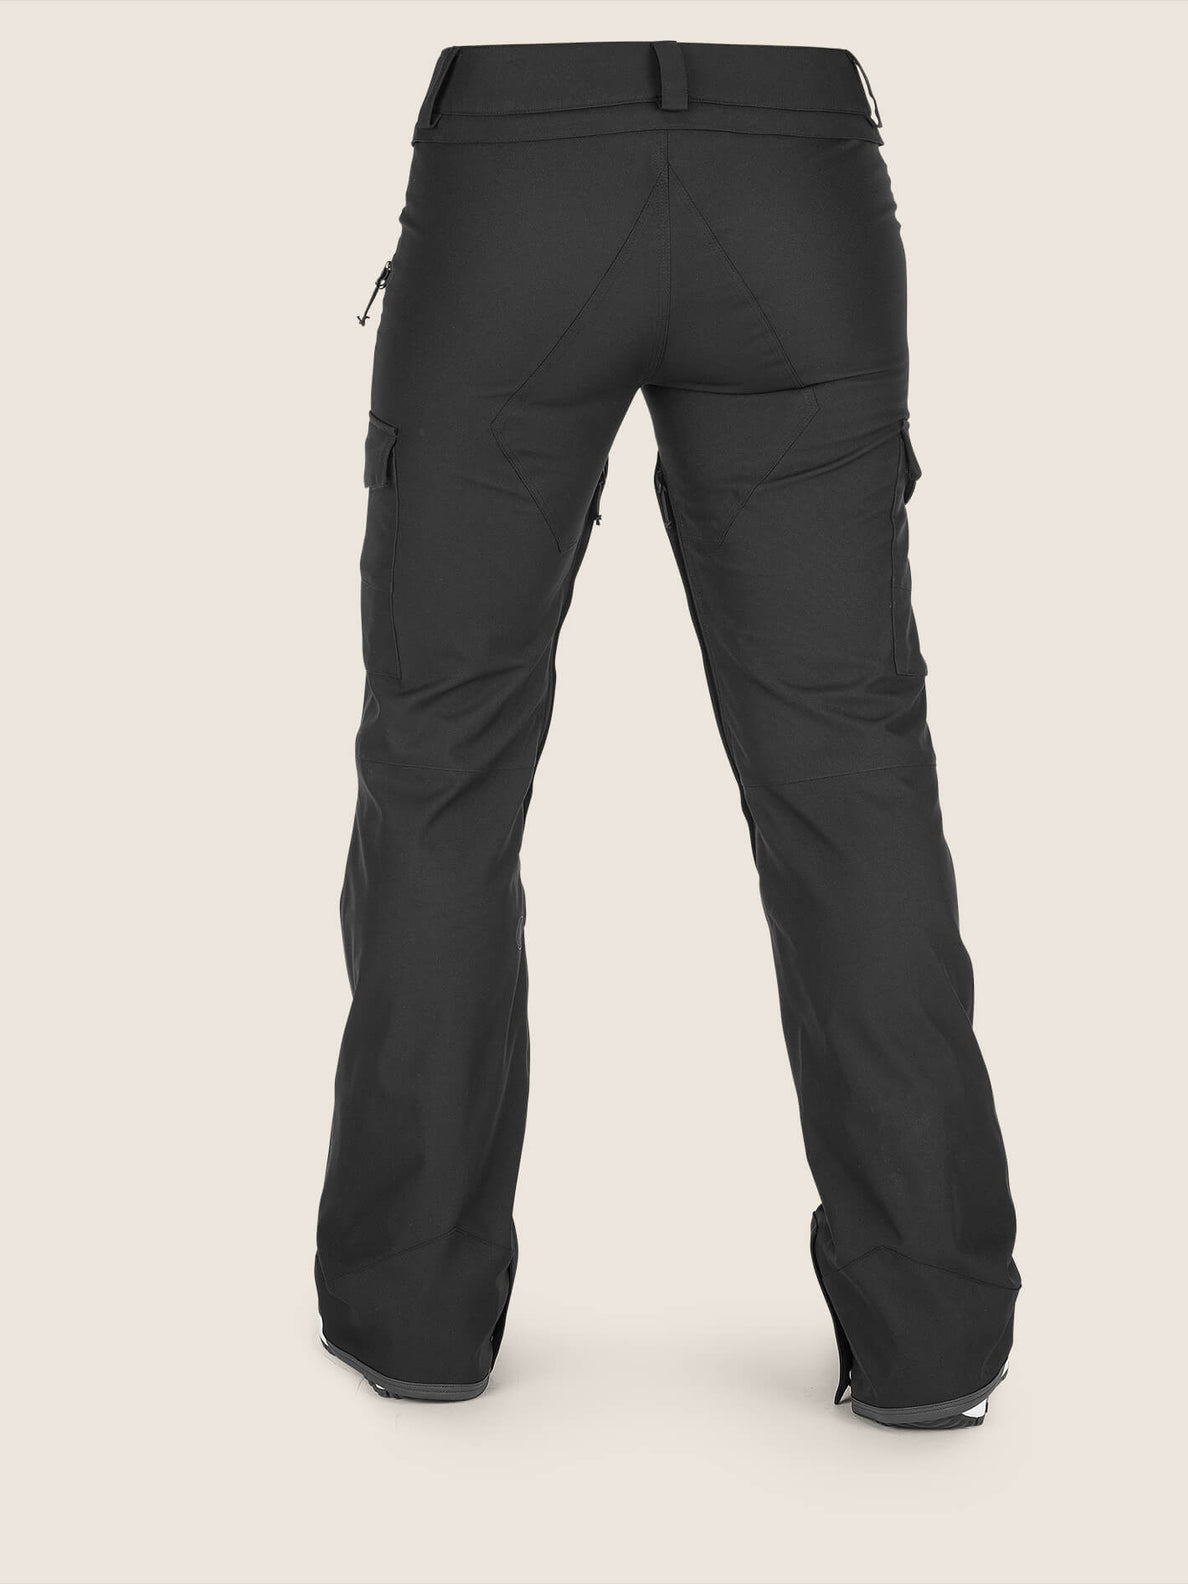 Mira Pant In Black, Back View